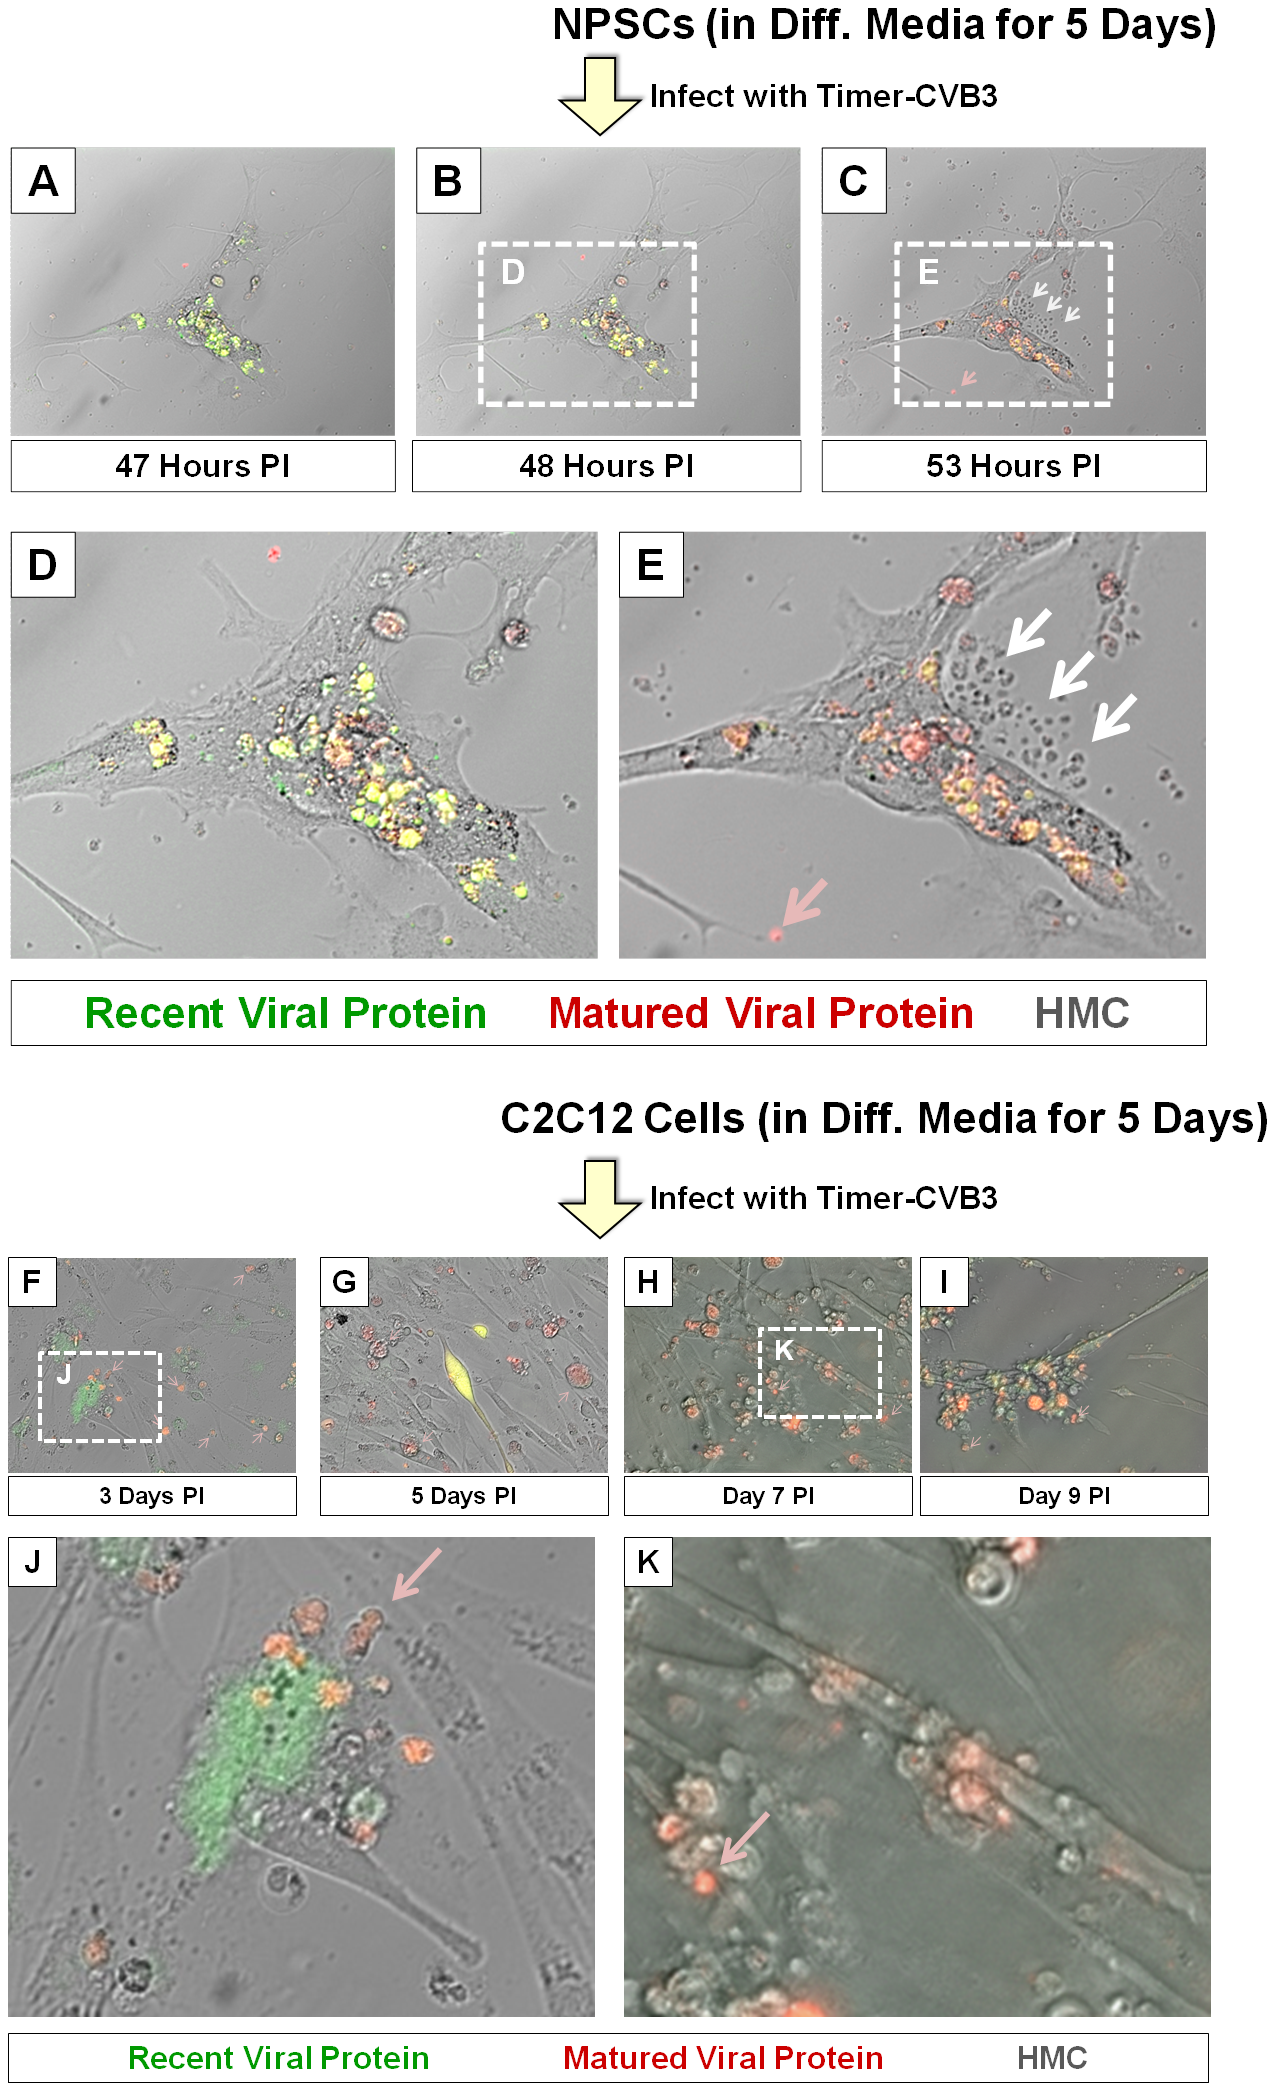 Shedding of EMVs containing viral protein following Timer-CVB3 infection of differentiated cells.